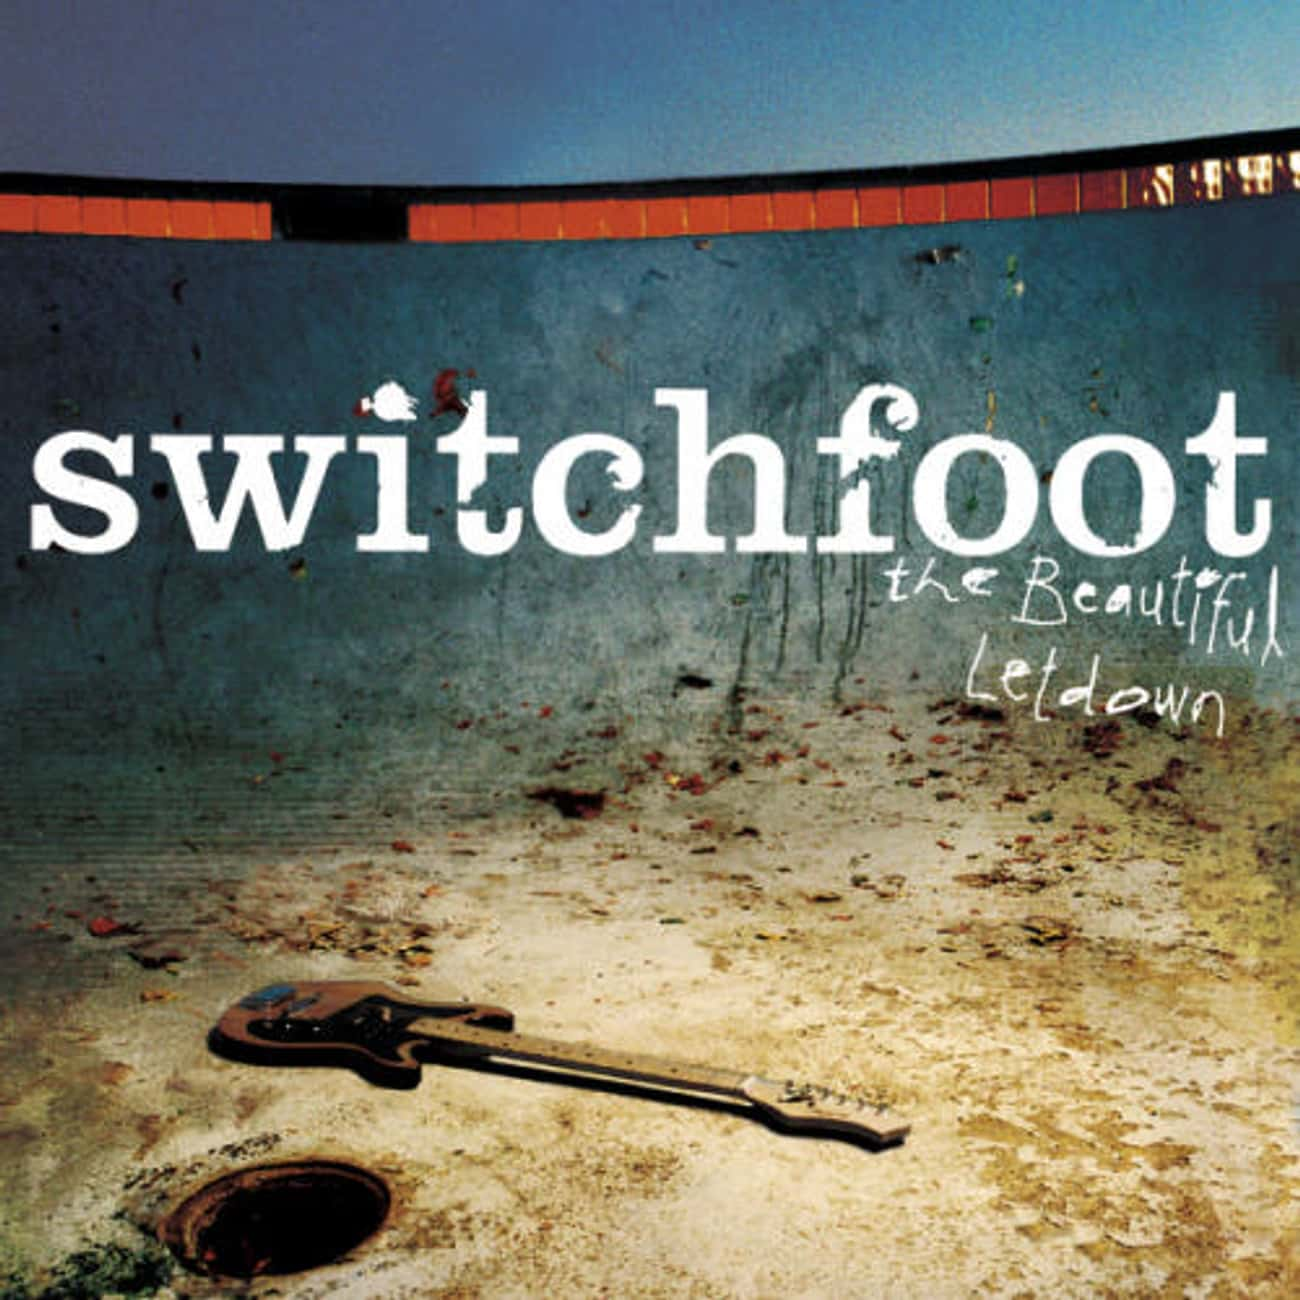 The Beautiful Letdown is listed (or ranked) 1 on the list The Best Switchfoot Albums of All Time